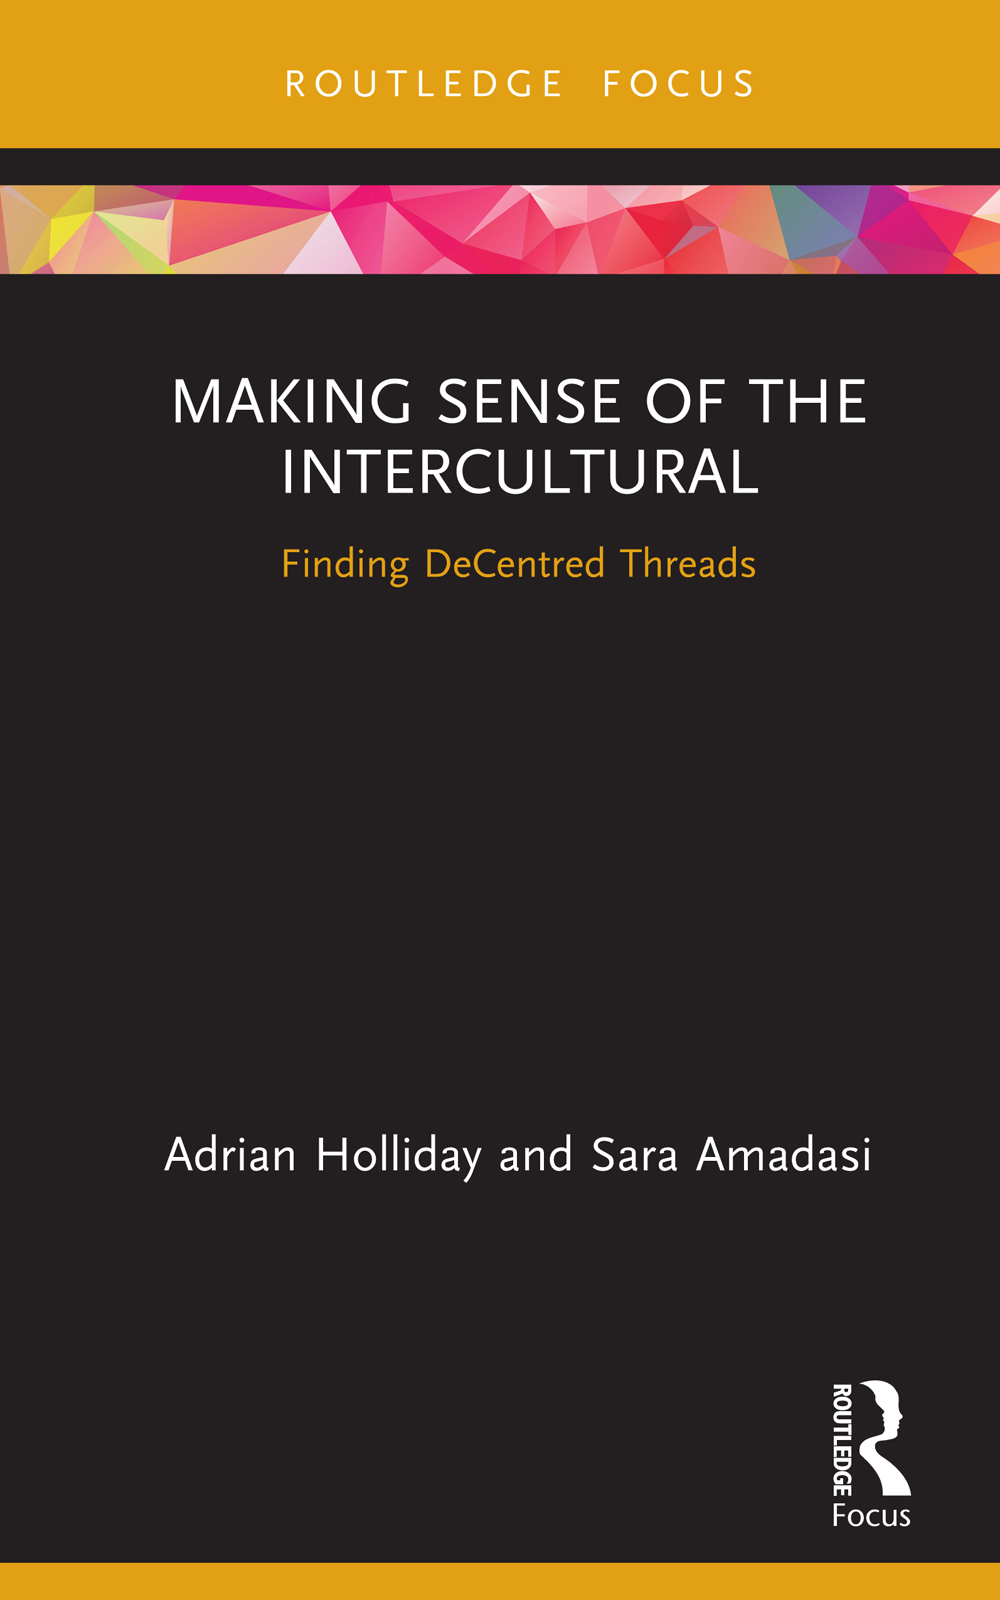 Making Sense of the Intercultural: Finding DeCentred Threads book cover